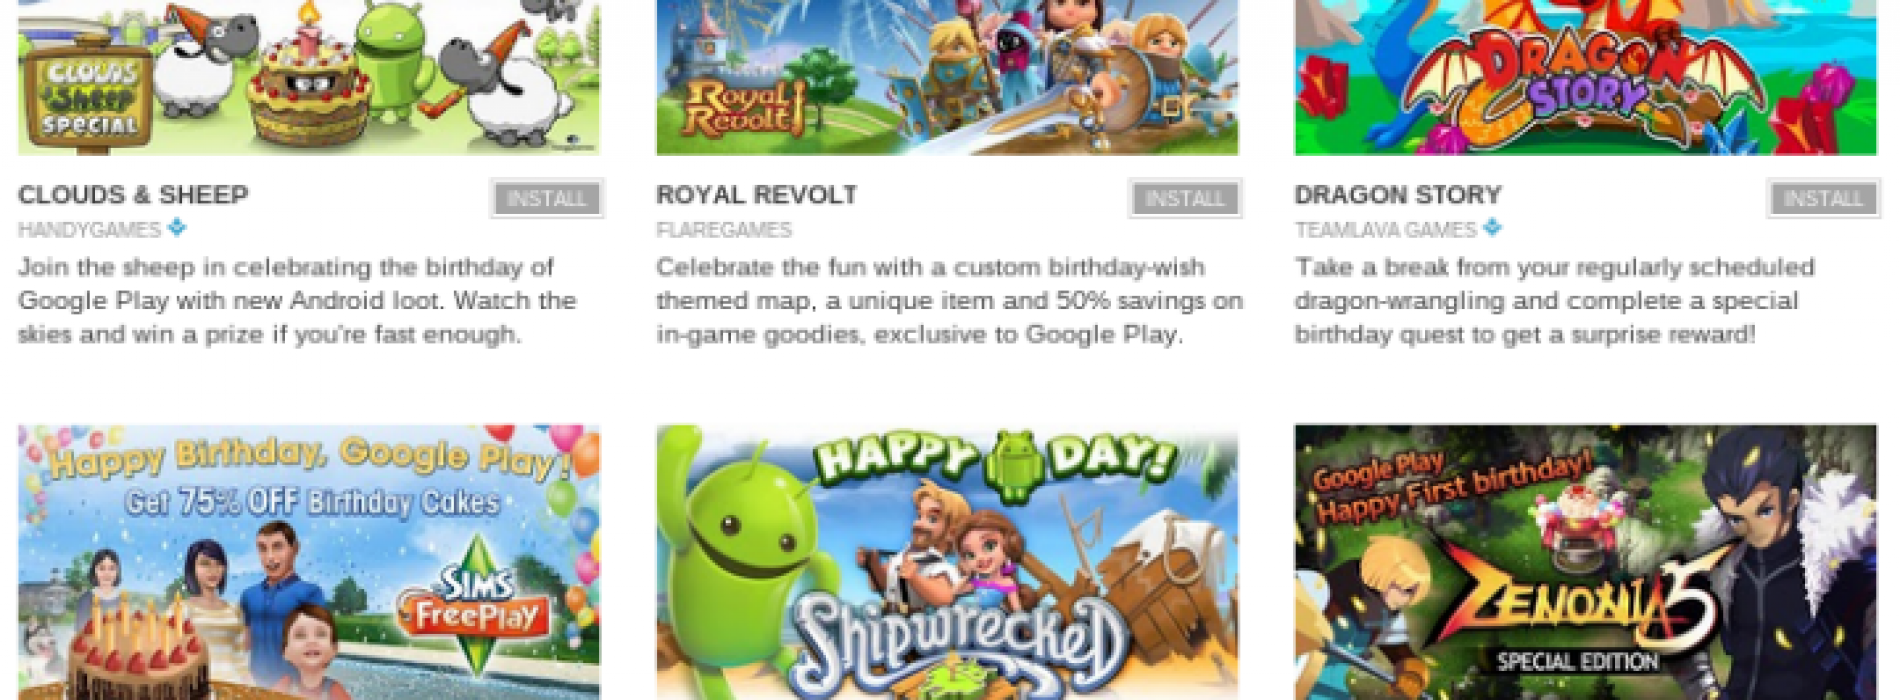 Google celebrates 1 year of Google Play with special deals